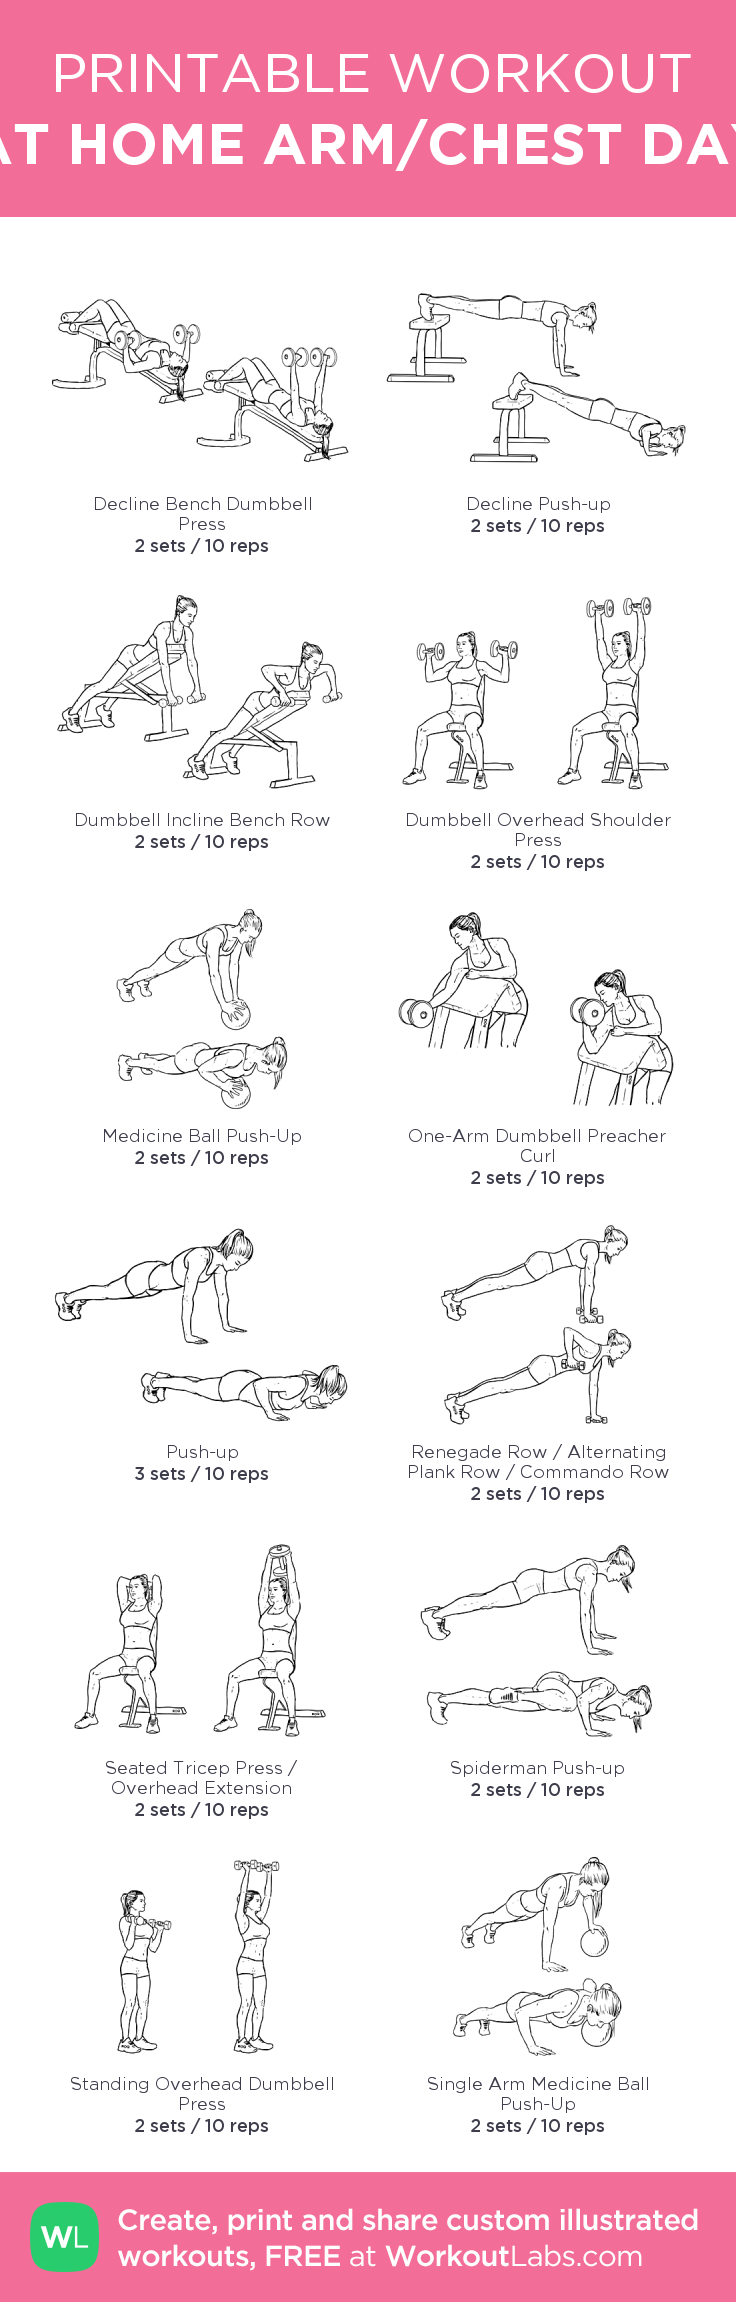 AT HOME ARM/CHEST DAY – my custom workout created at WorkoutLabs.com • Click through to download as printable PDF! #customworkout